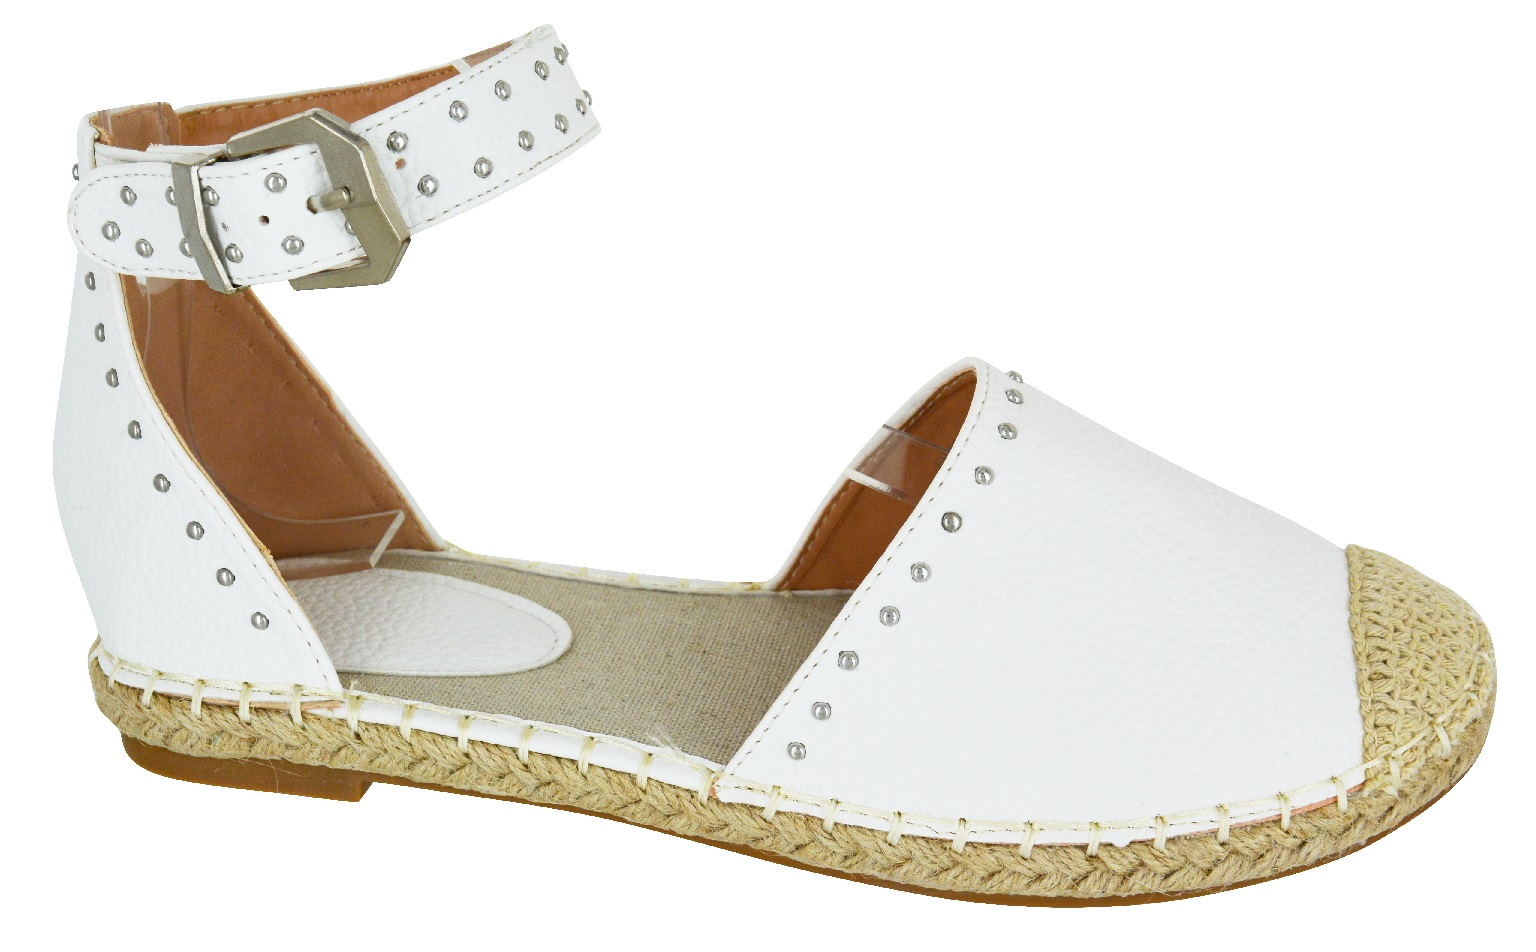 LADIES-WOMENS-FLAT-HEEL-STUD-ANKLE-STRAP-SUMMER-ESPADRILLES-SANDALS-SHOES-SZ-3-8